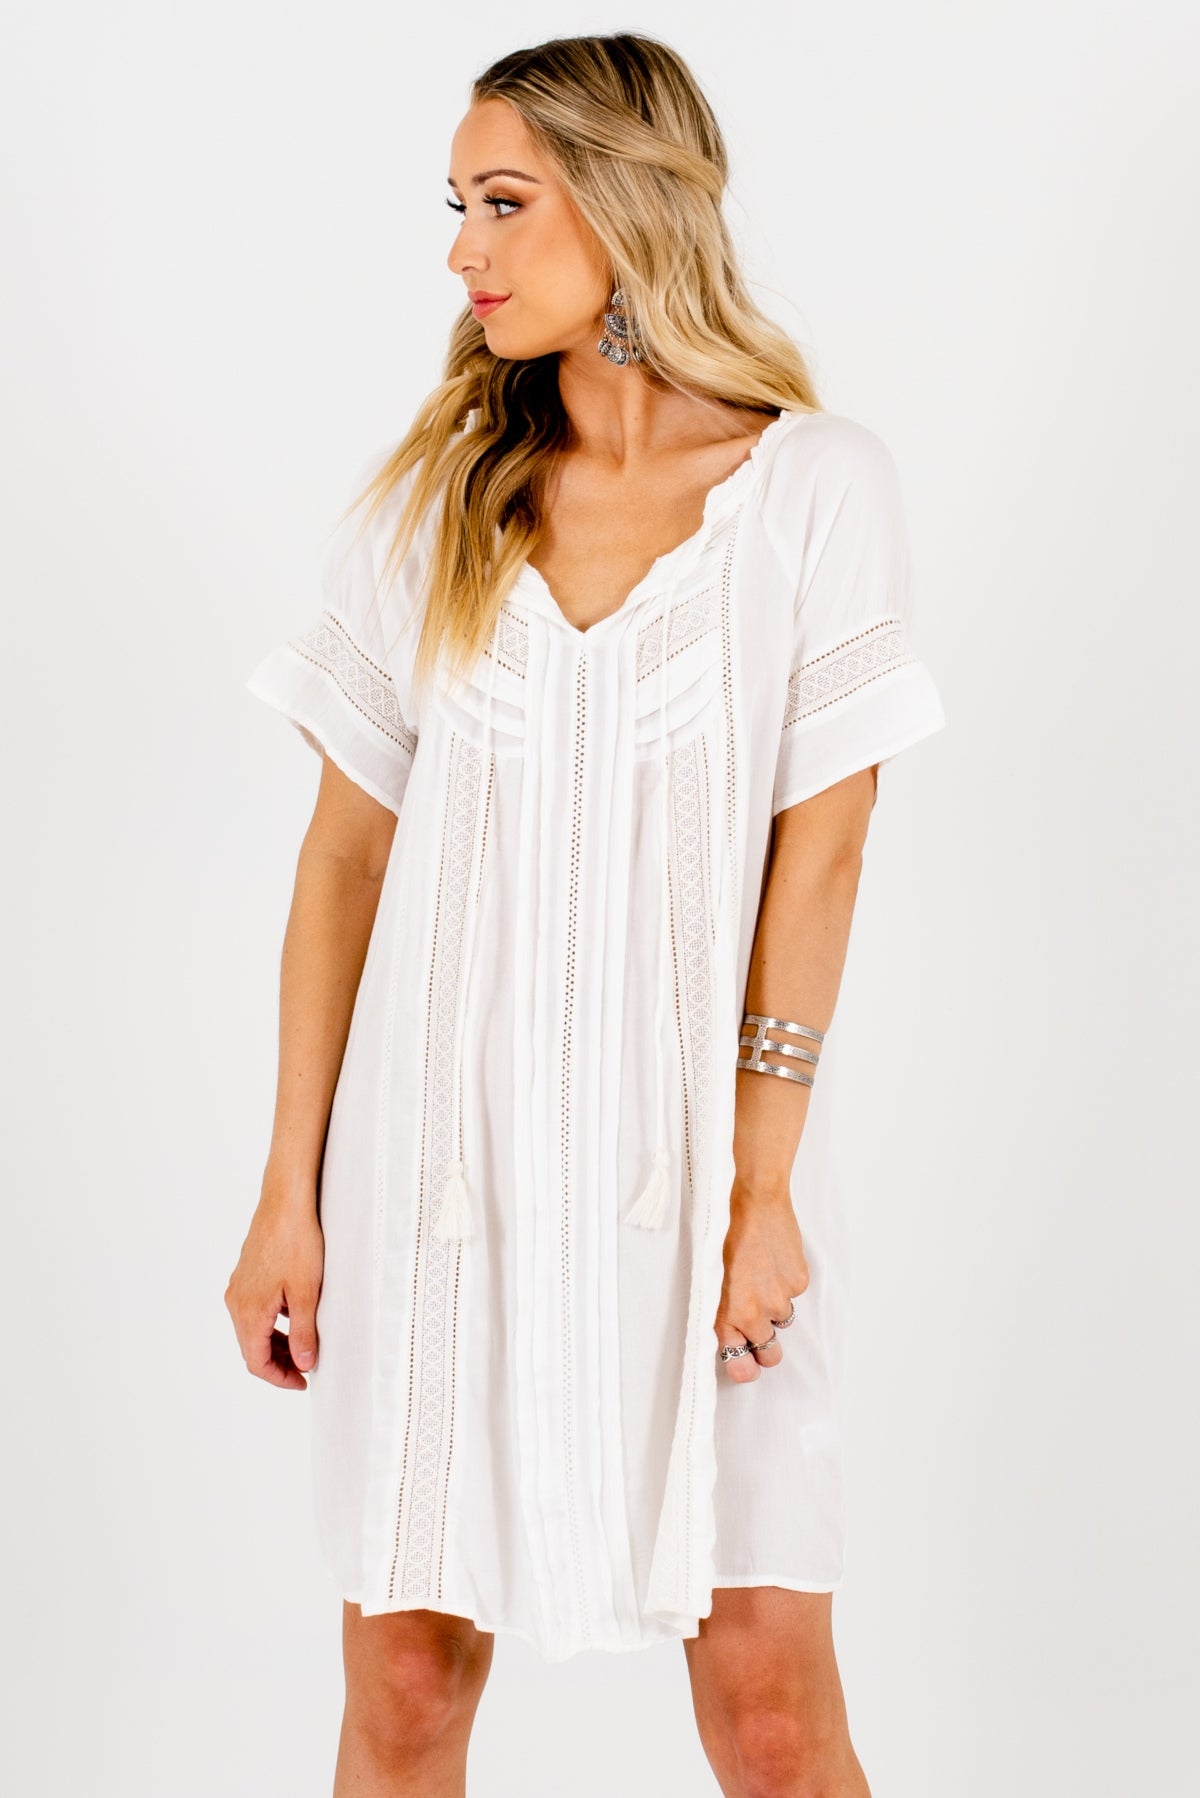 White Crochet Lace Accented Boutique Tunics for Women